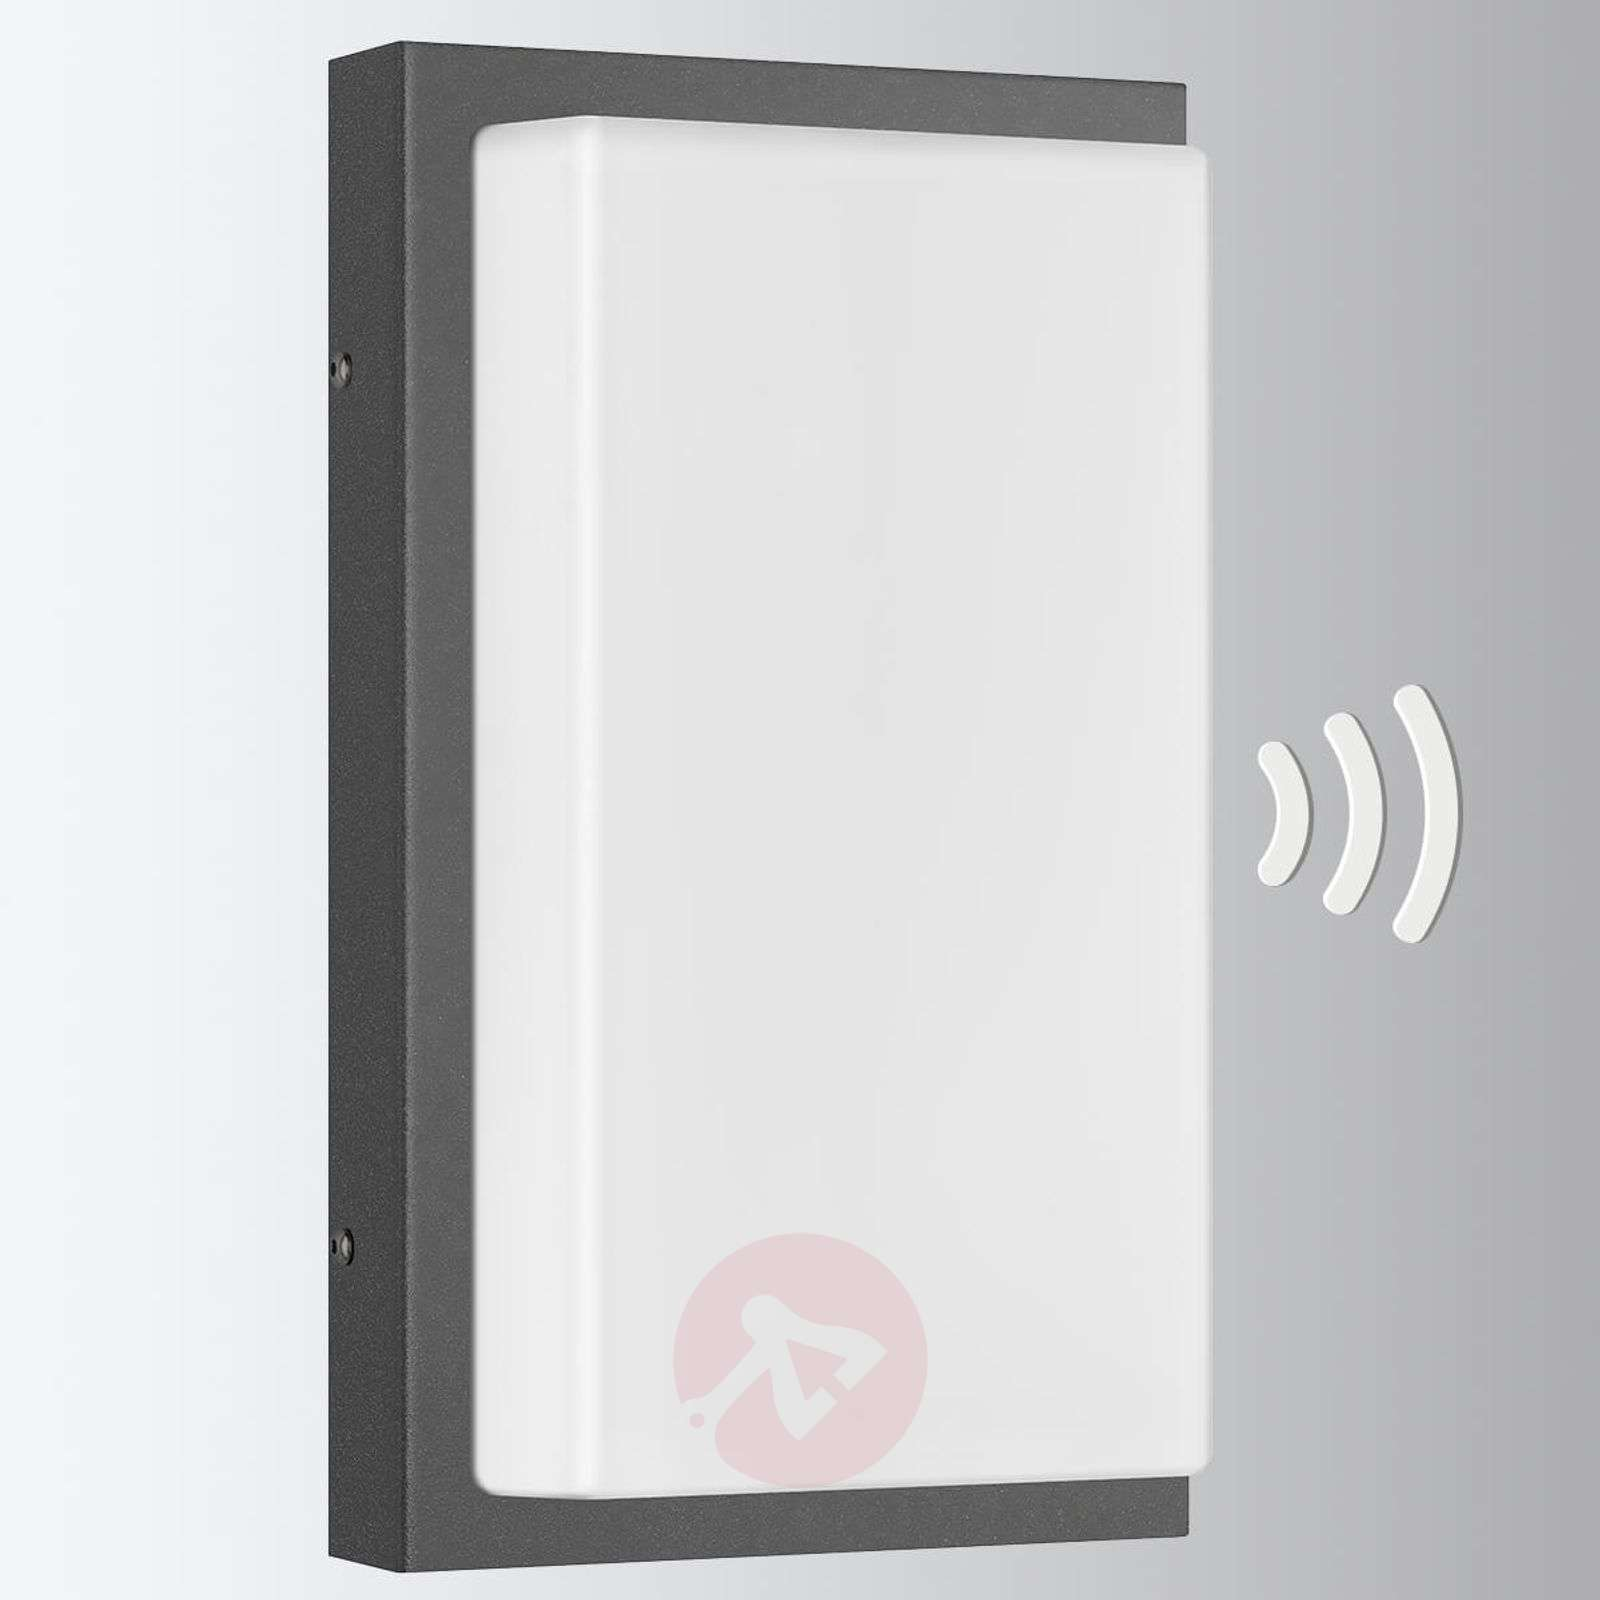 Outdoor wall lamp Babett with motion sensor-6068121-01